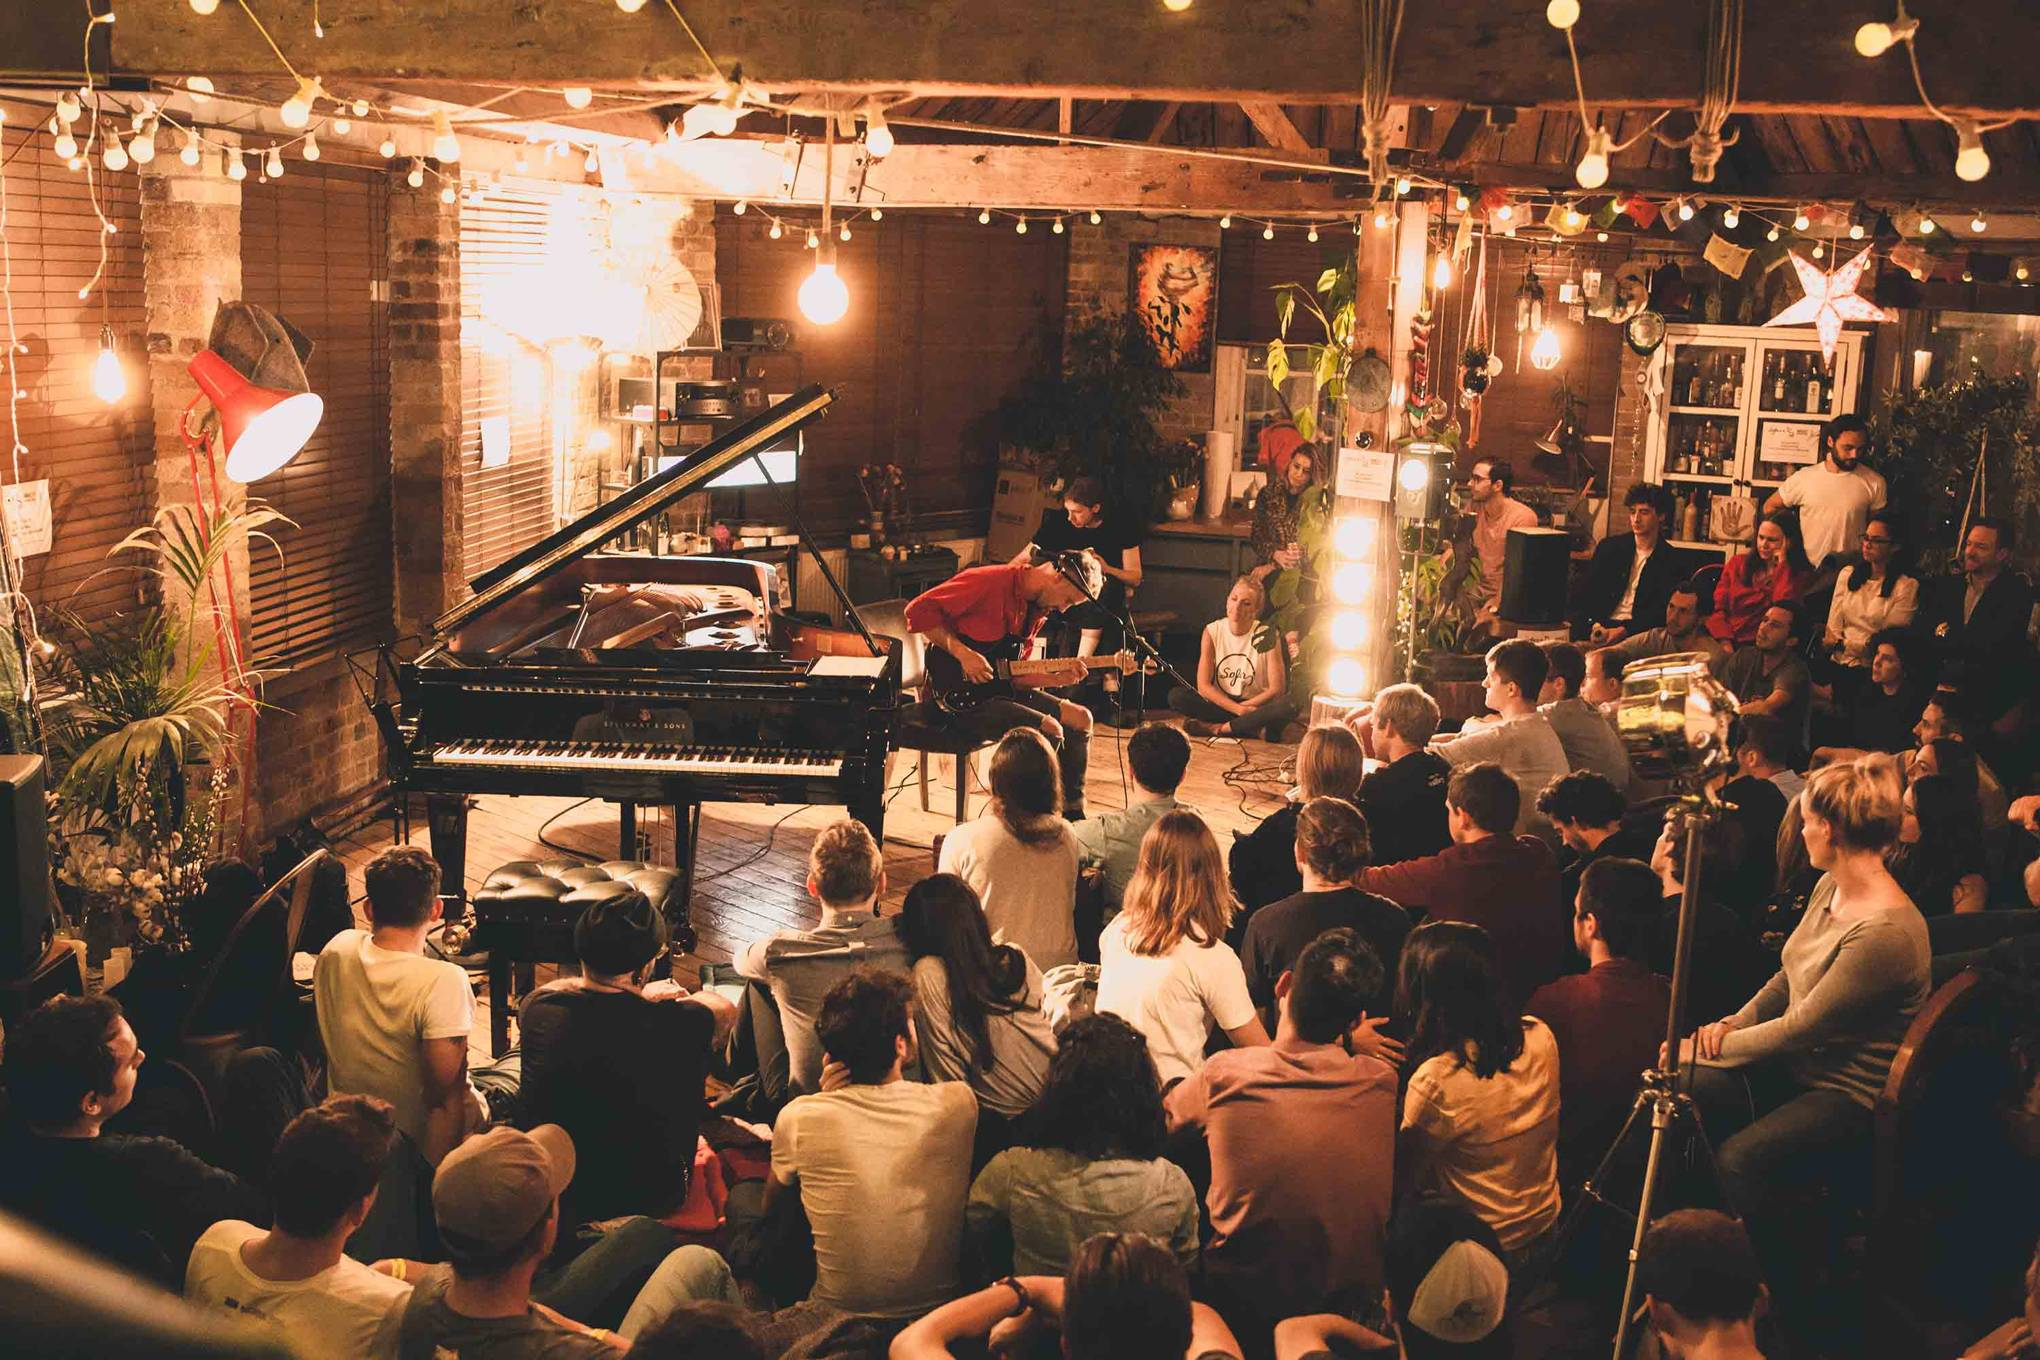 The 10 best live music bars in London